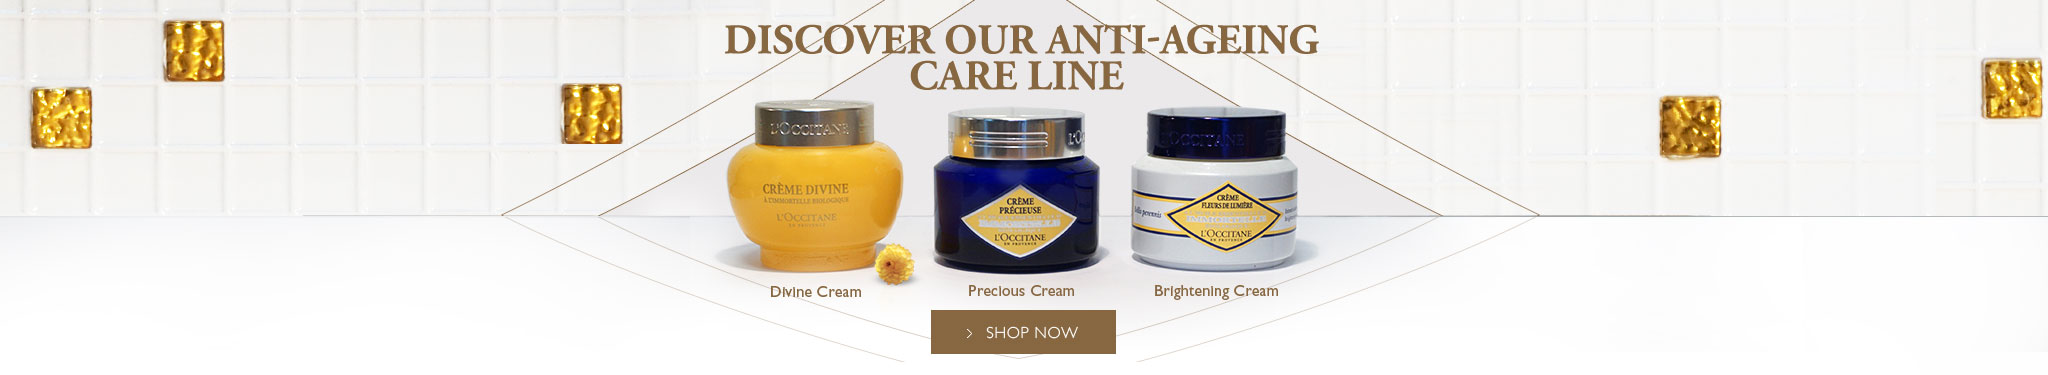 Discover Your Anti-Ageing Care Line